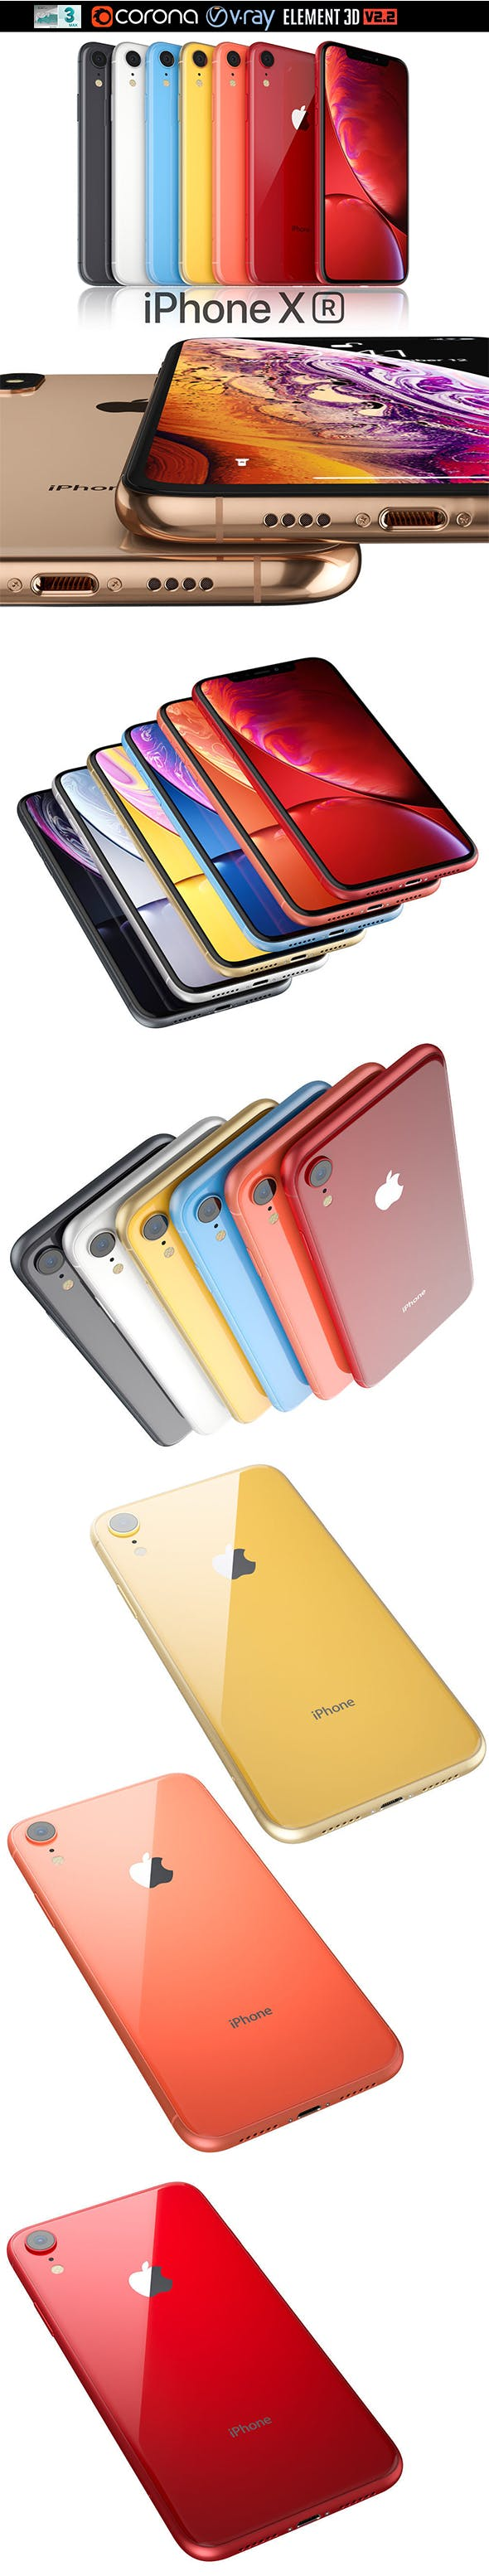 iPhone Xr ALL colors. - 3DOcean Item for Sale